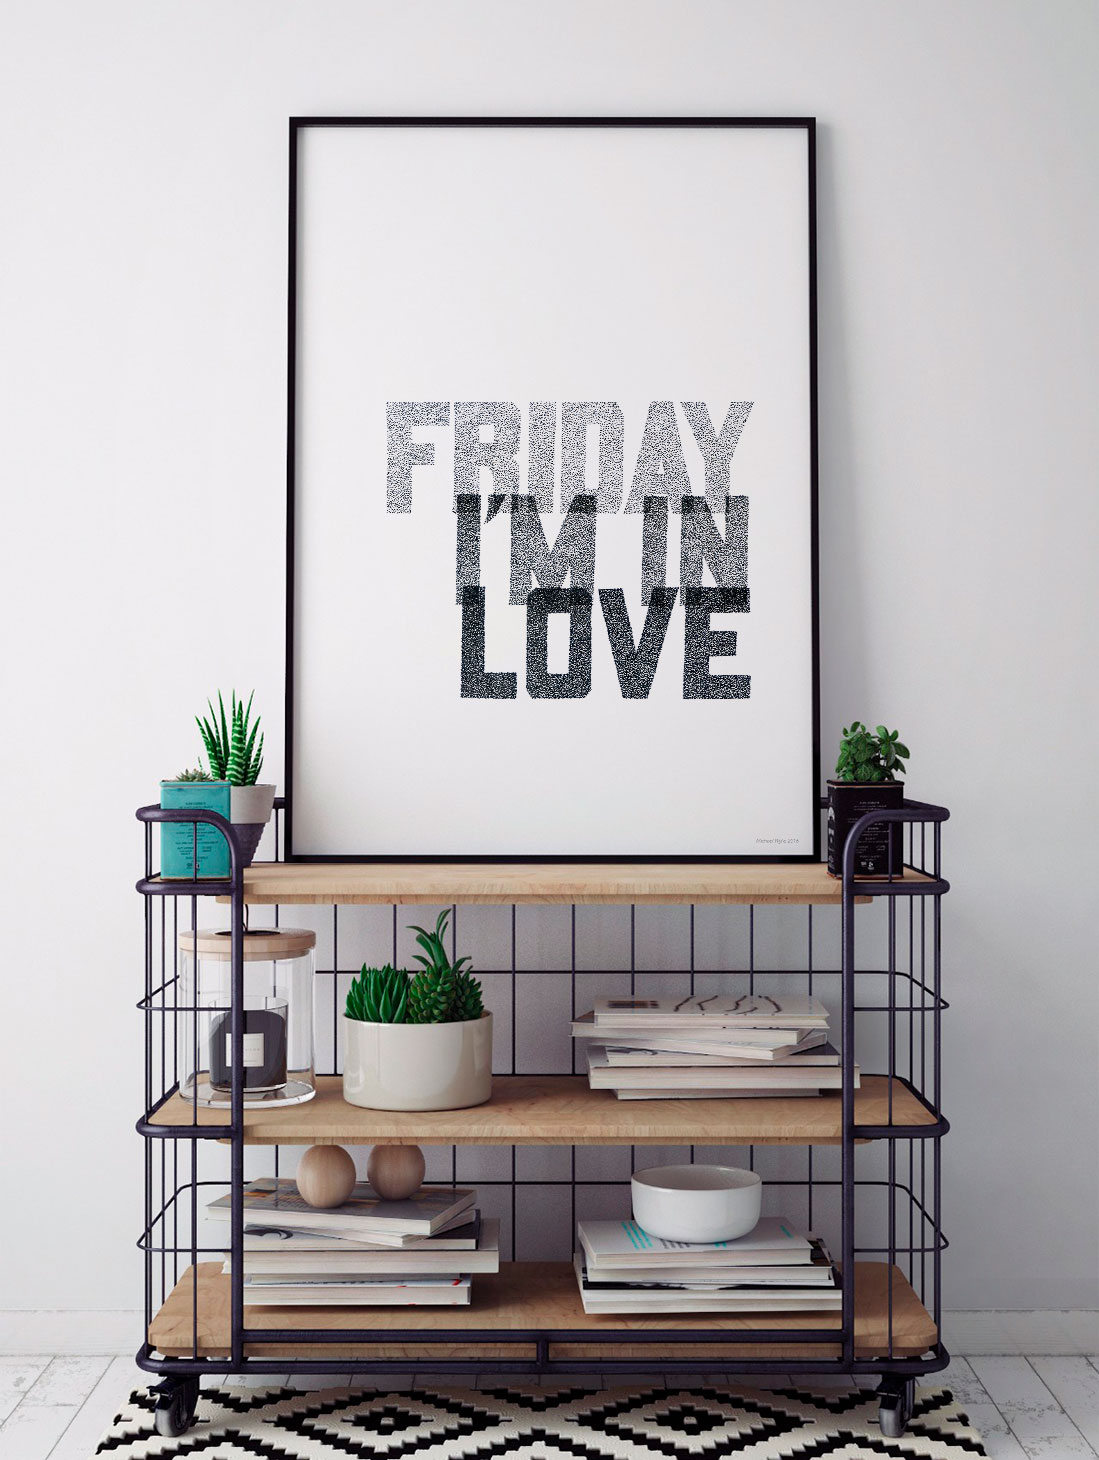 Friday I'm in Love. Music Typography Prints from Sketchbook Design. Hand drawn song lyric prints, music prints and personalised song lyric artwork.